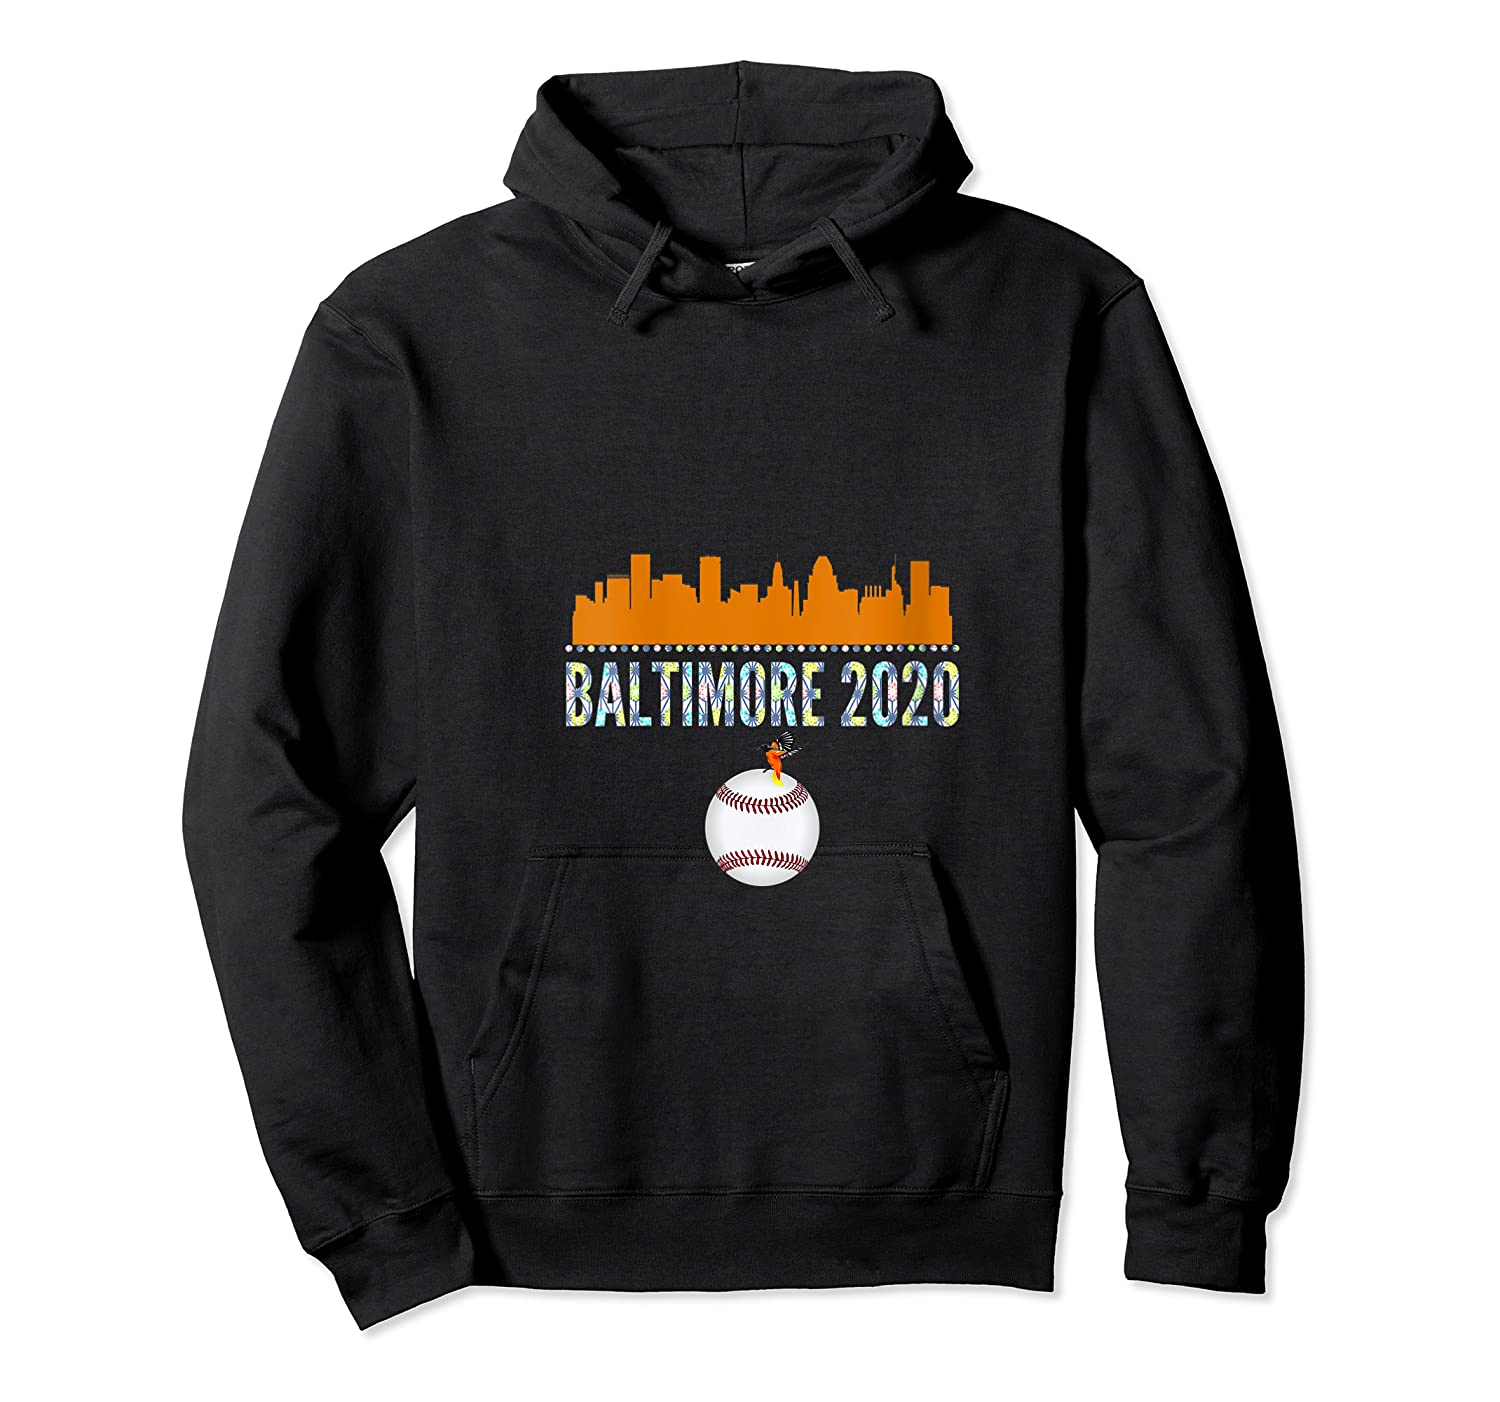 Baltimore Oriole Baseball 2020 Skyline Colorful Font Shirts Unisex Pullover Hoodie